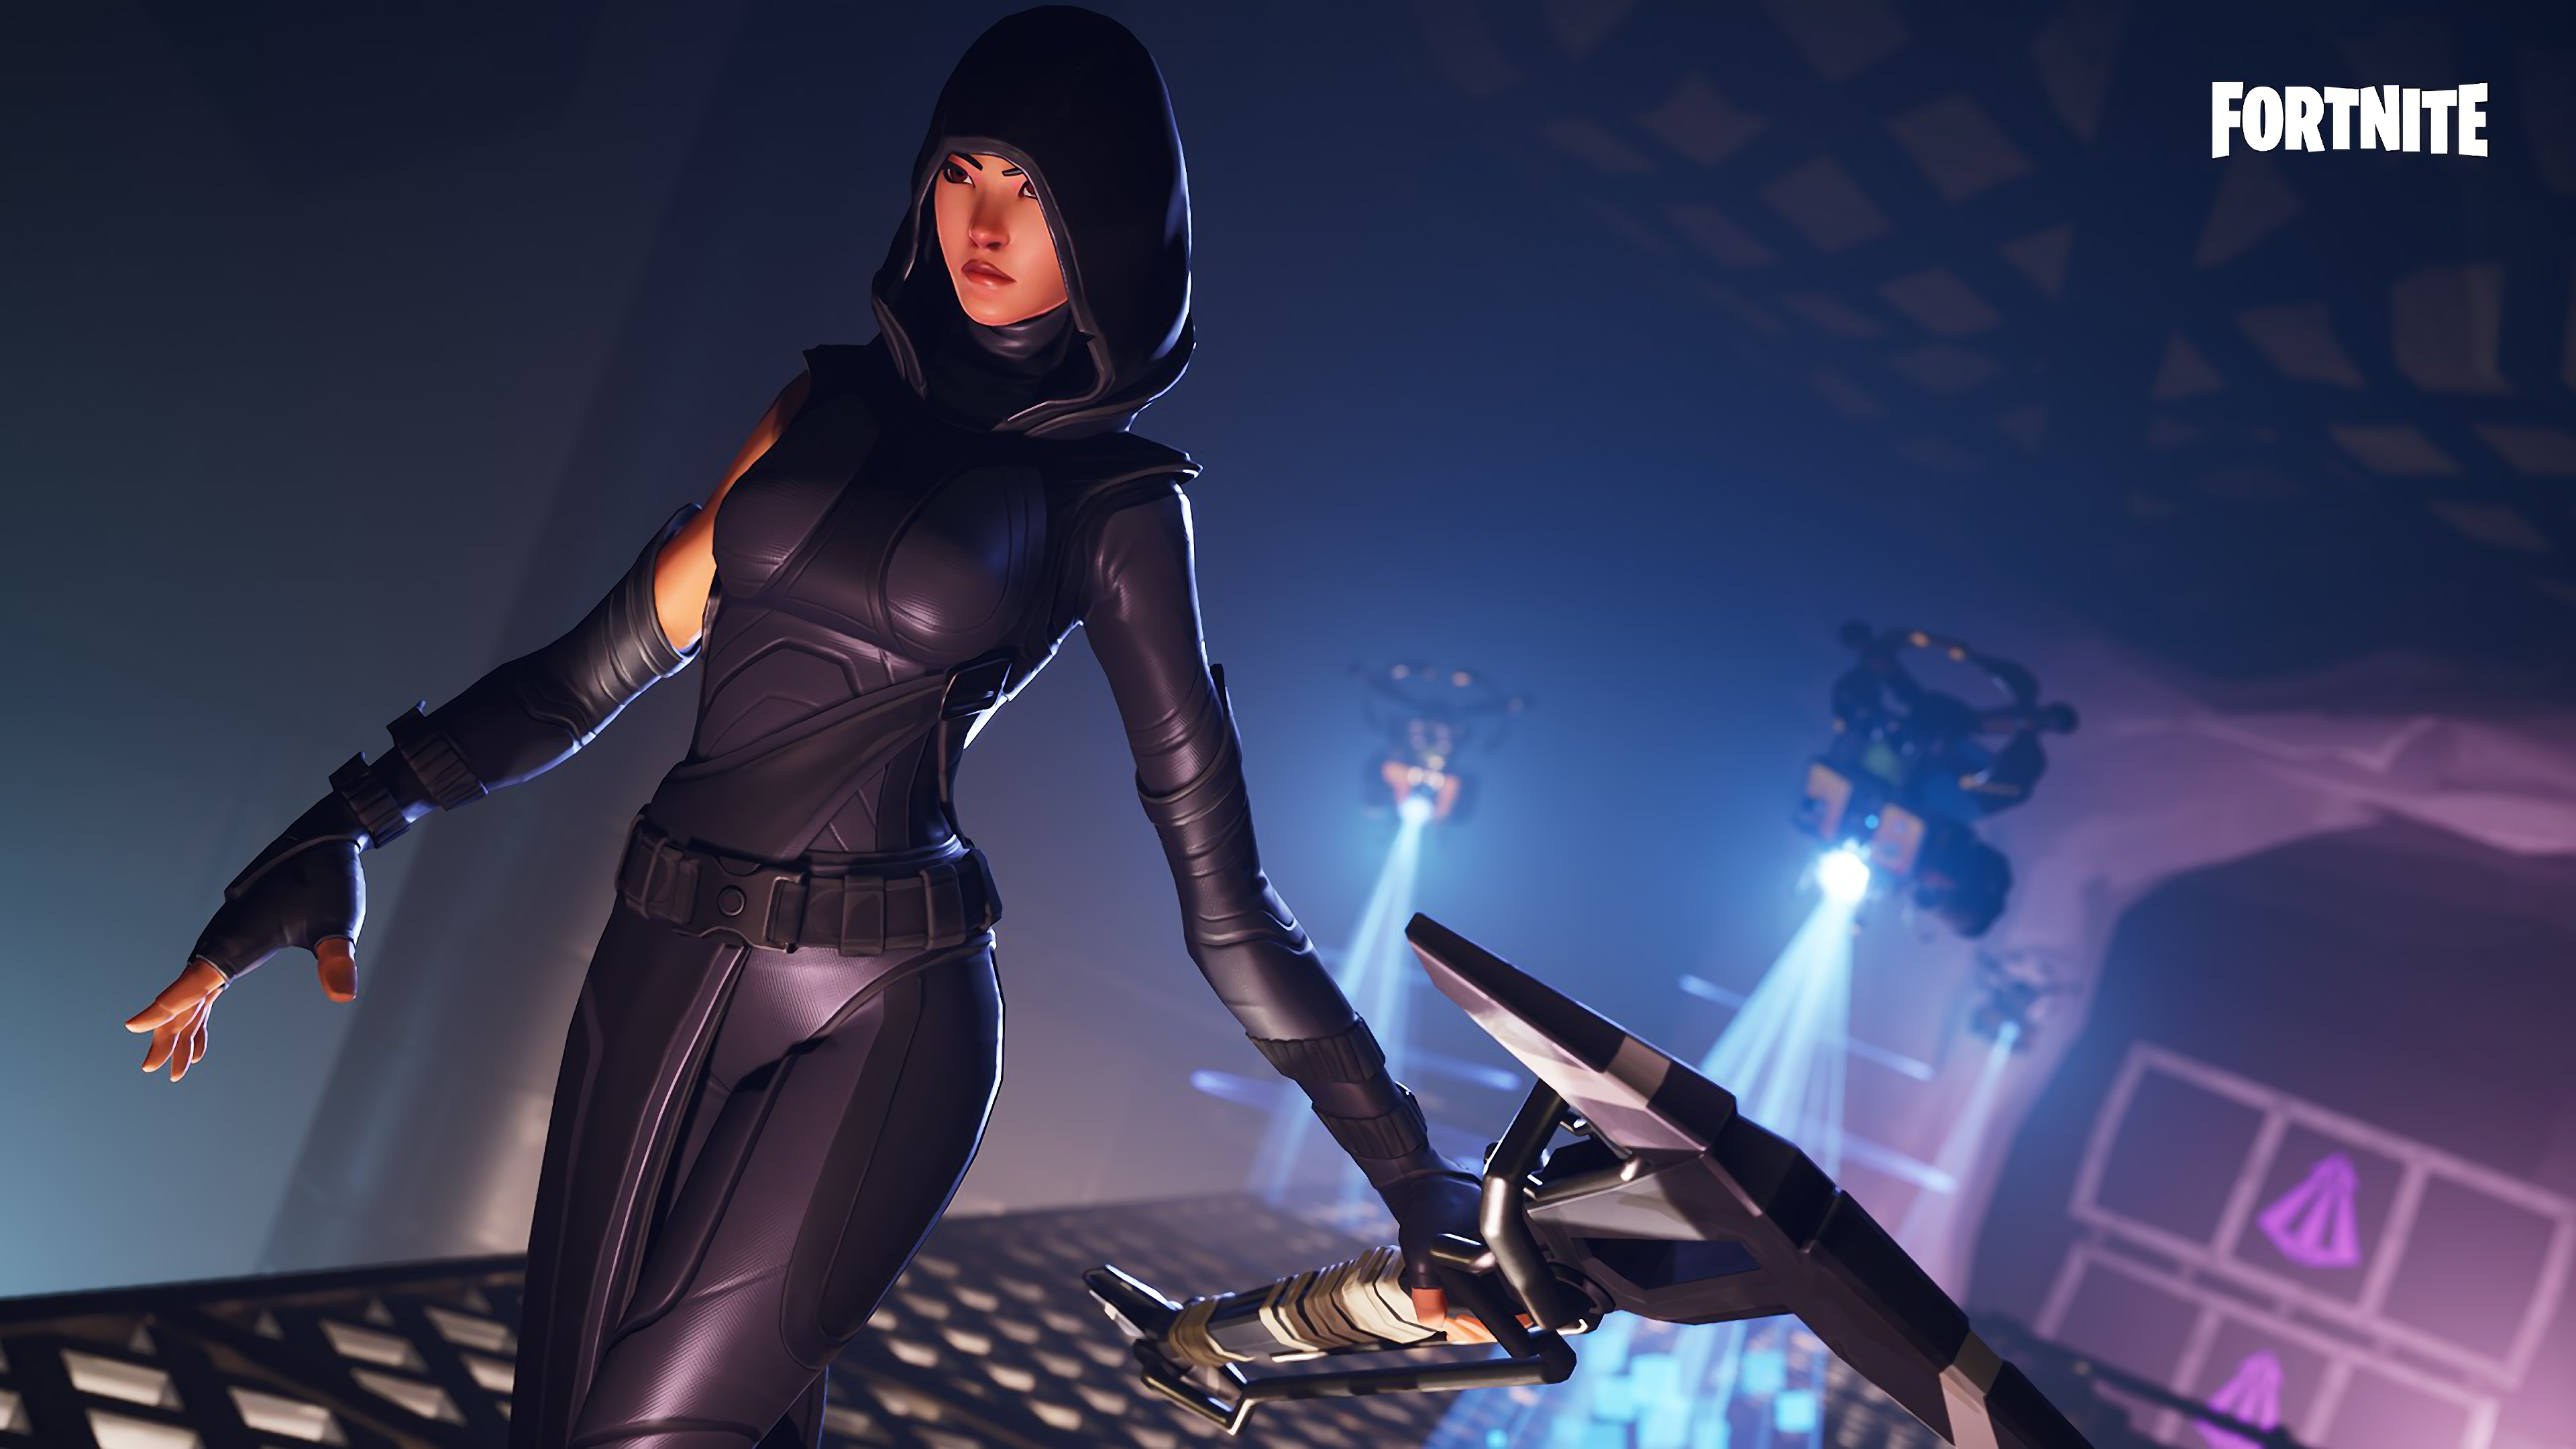 Fate Fortnite Skin 4k Ultra Hd Wallpaper Background Image